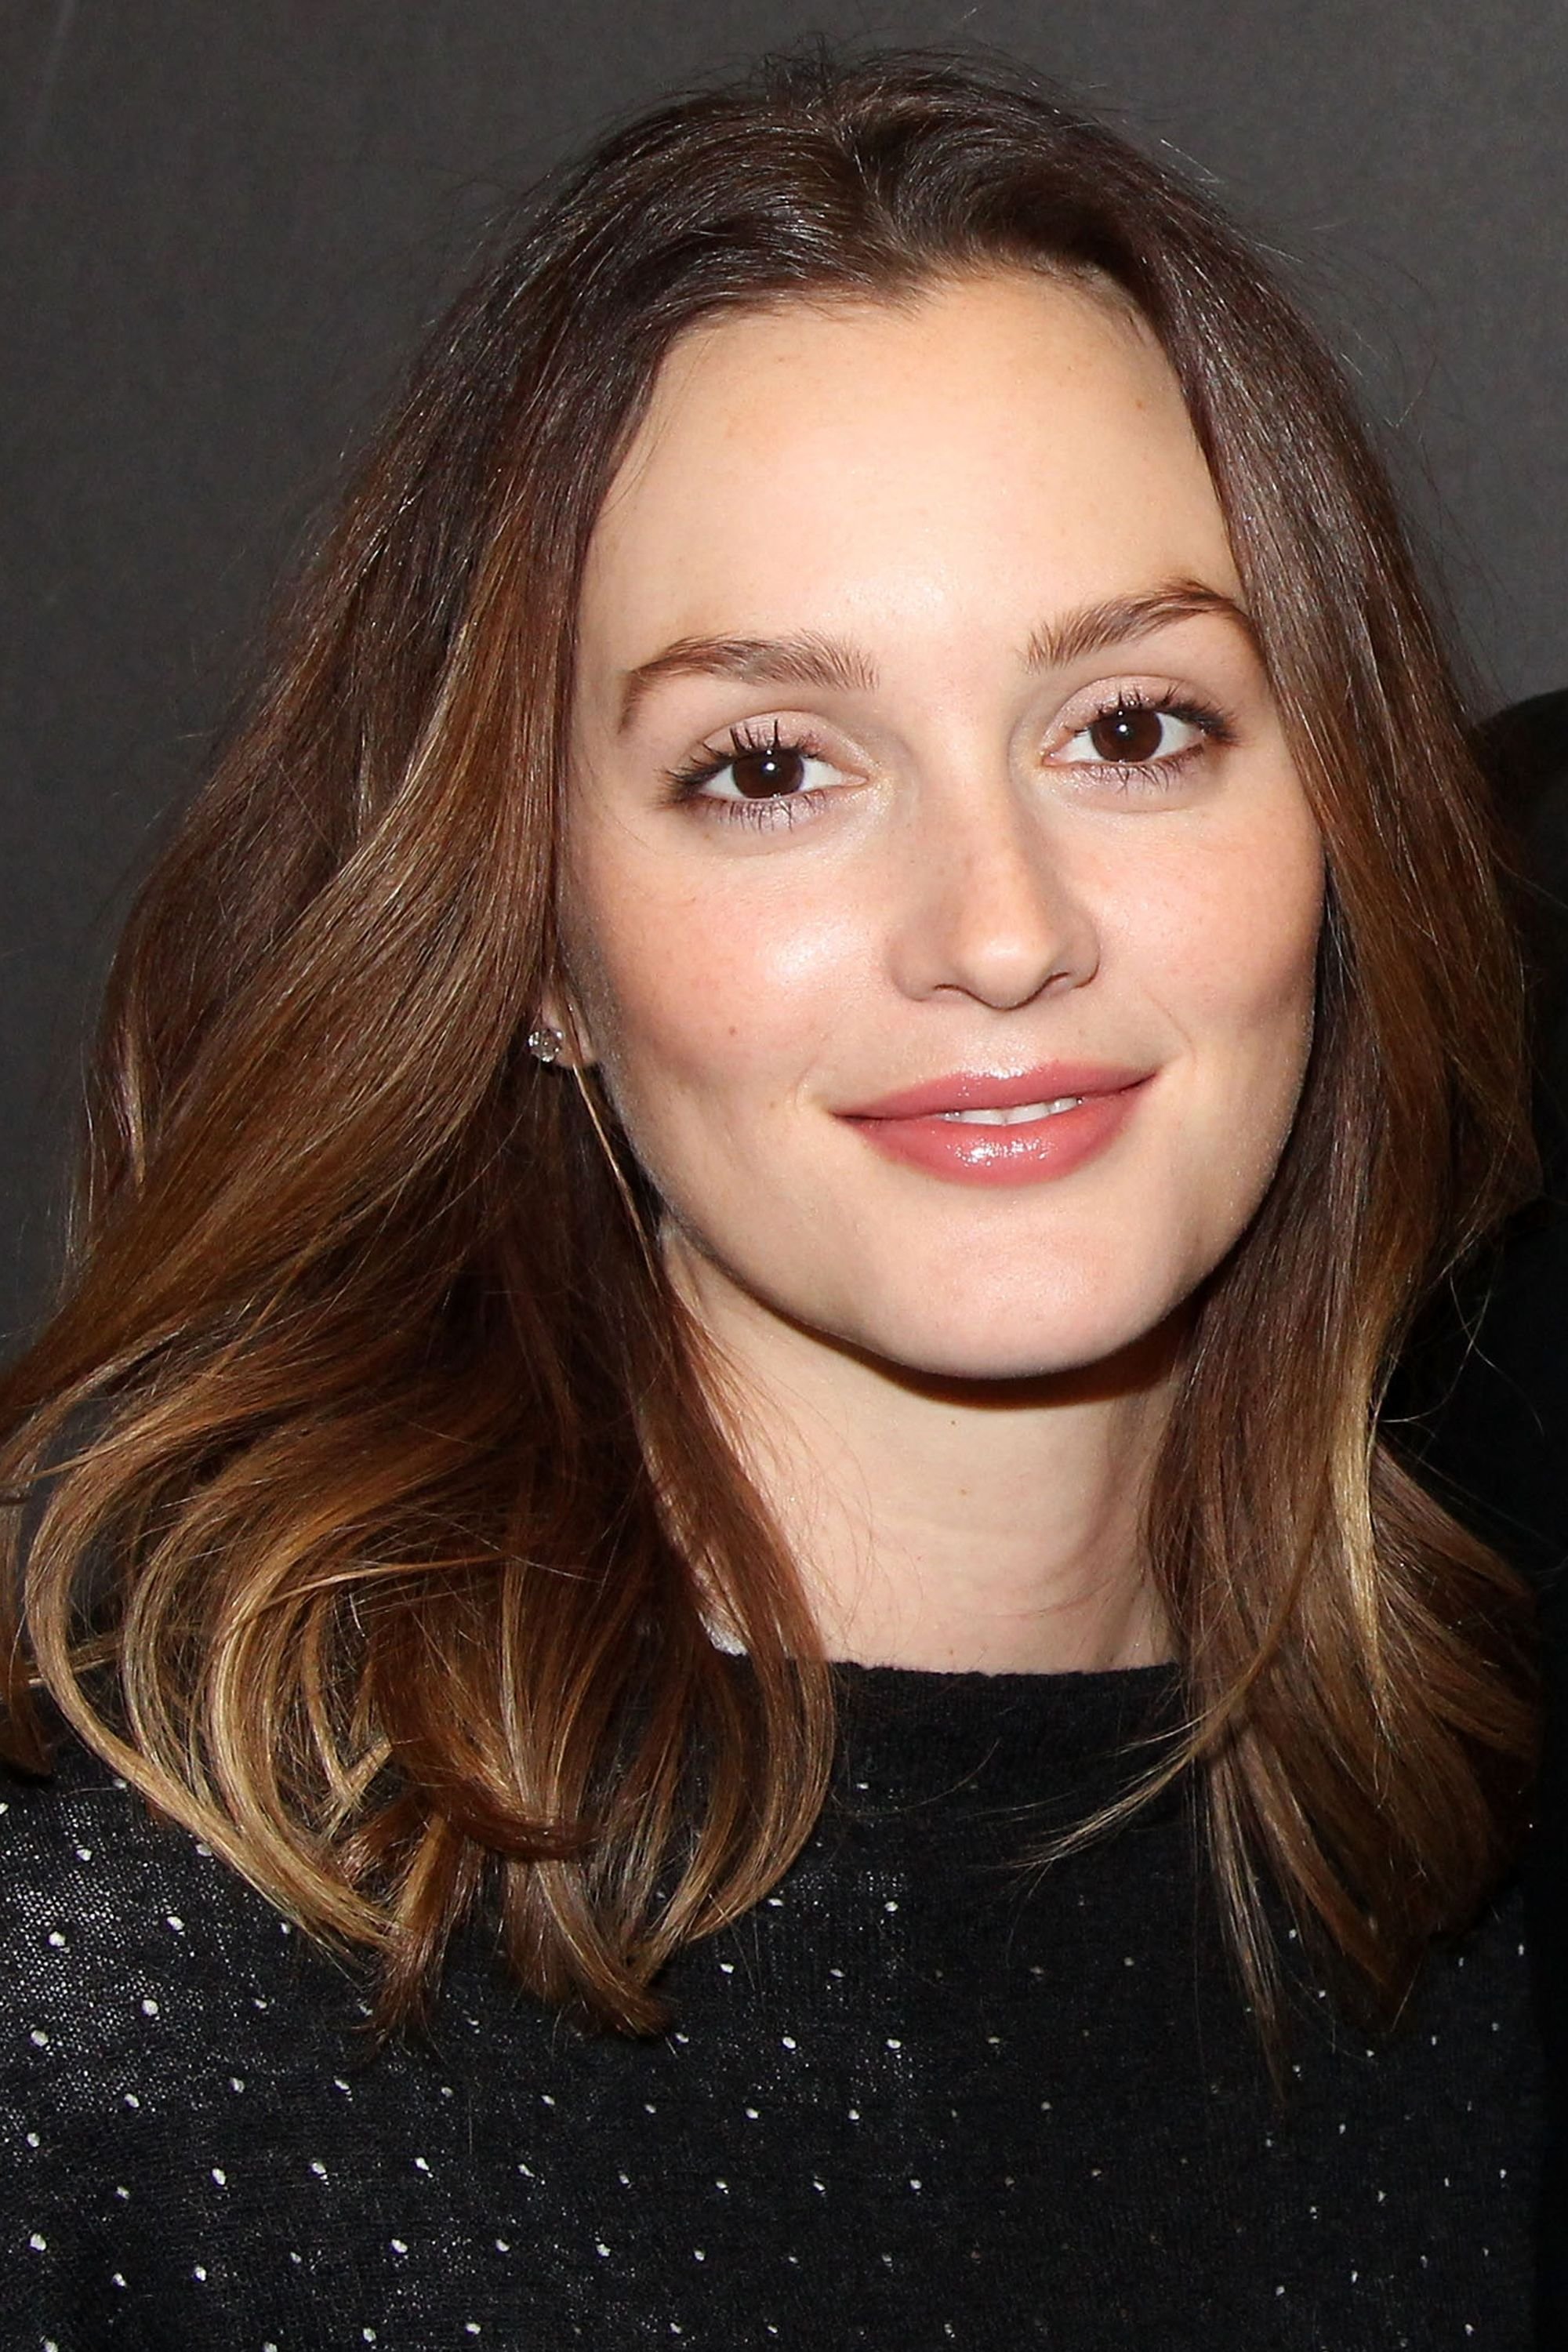 10 Women Who Were Made Famous By Their Hair Color Leighton Meester Hair Going Blonde From Brunette Gossip Girl Hairstyles